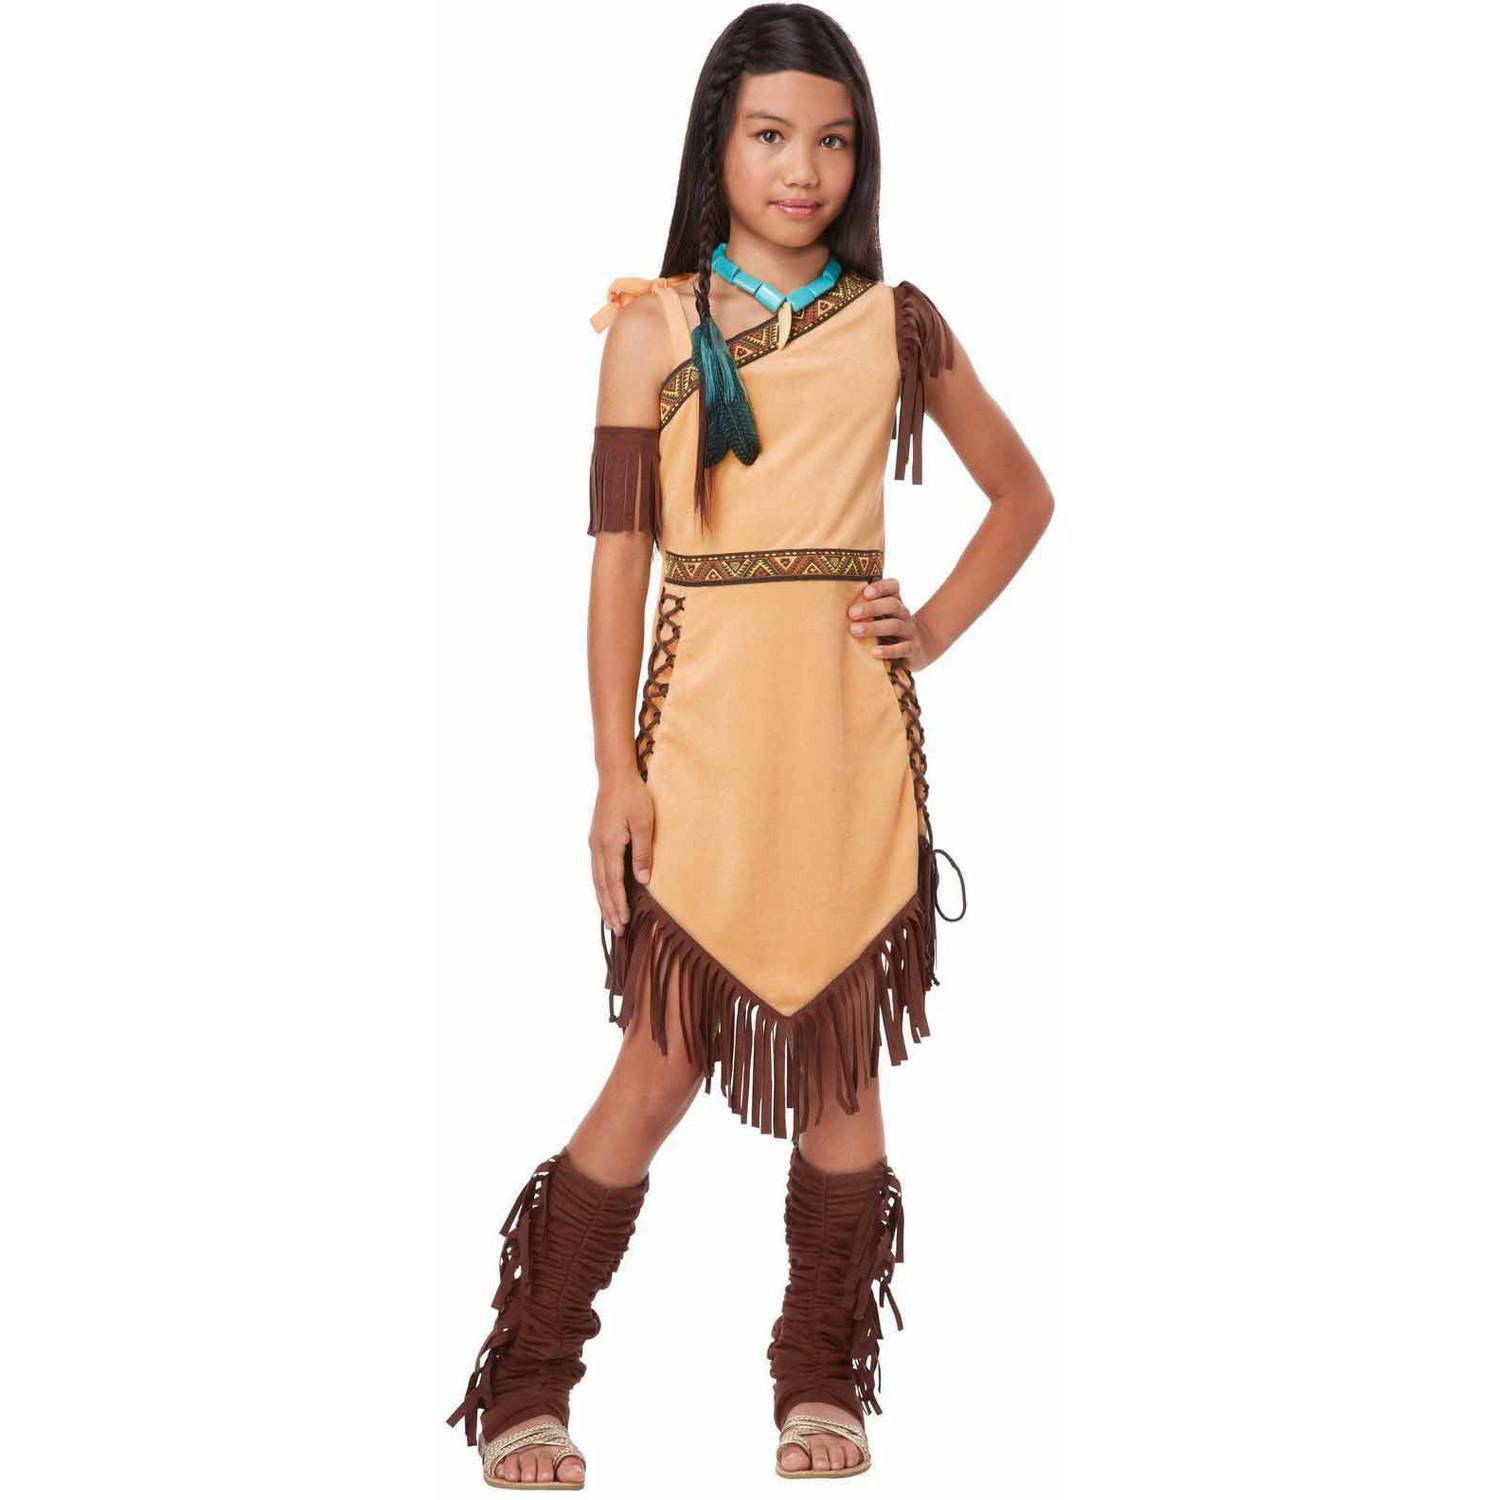 sc 1 st  Walmart & Native American Princess Girlsu0027 Child Halloween Costume - Walmart.com